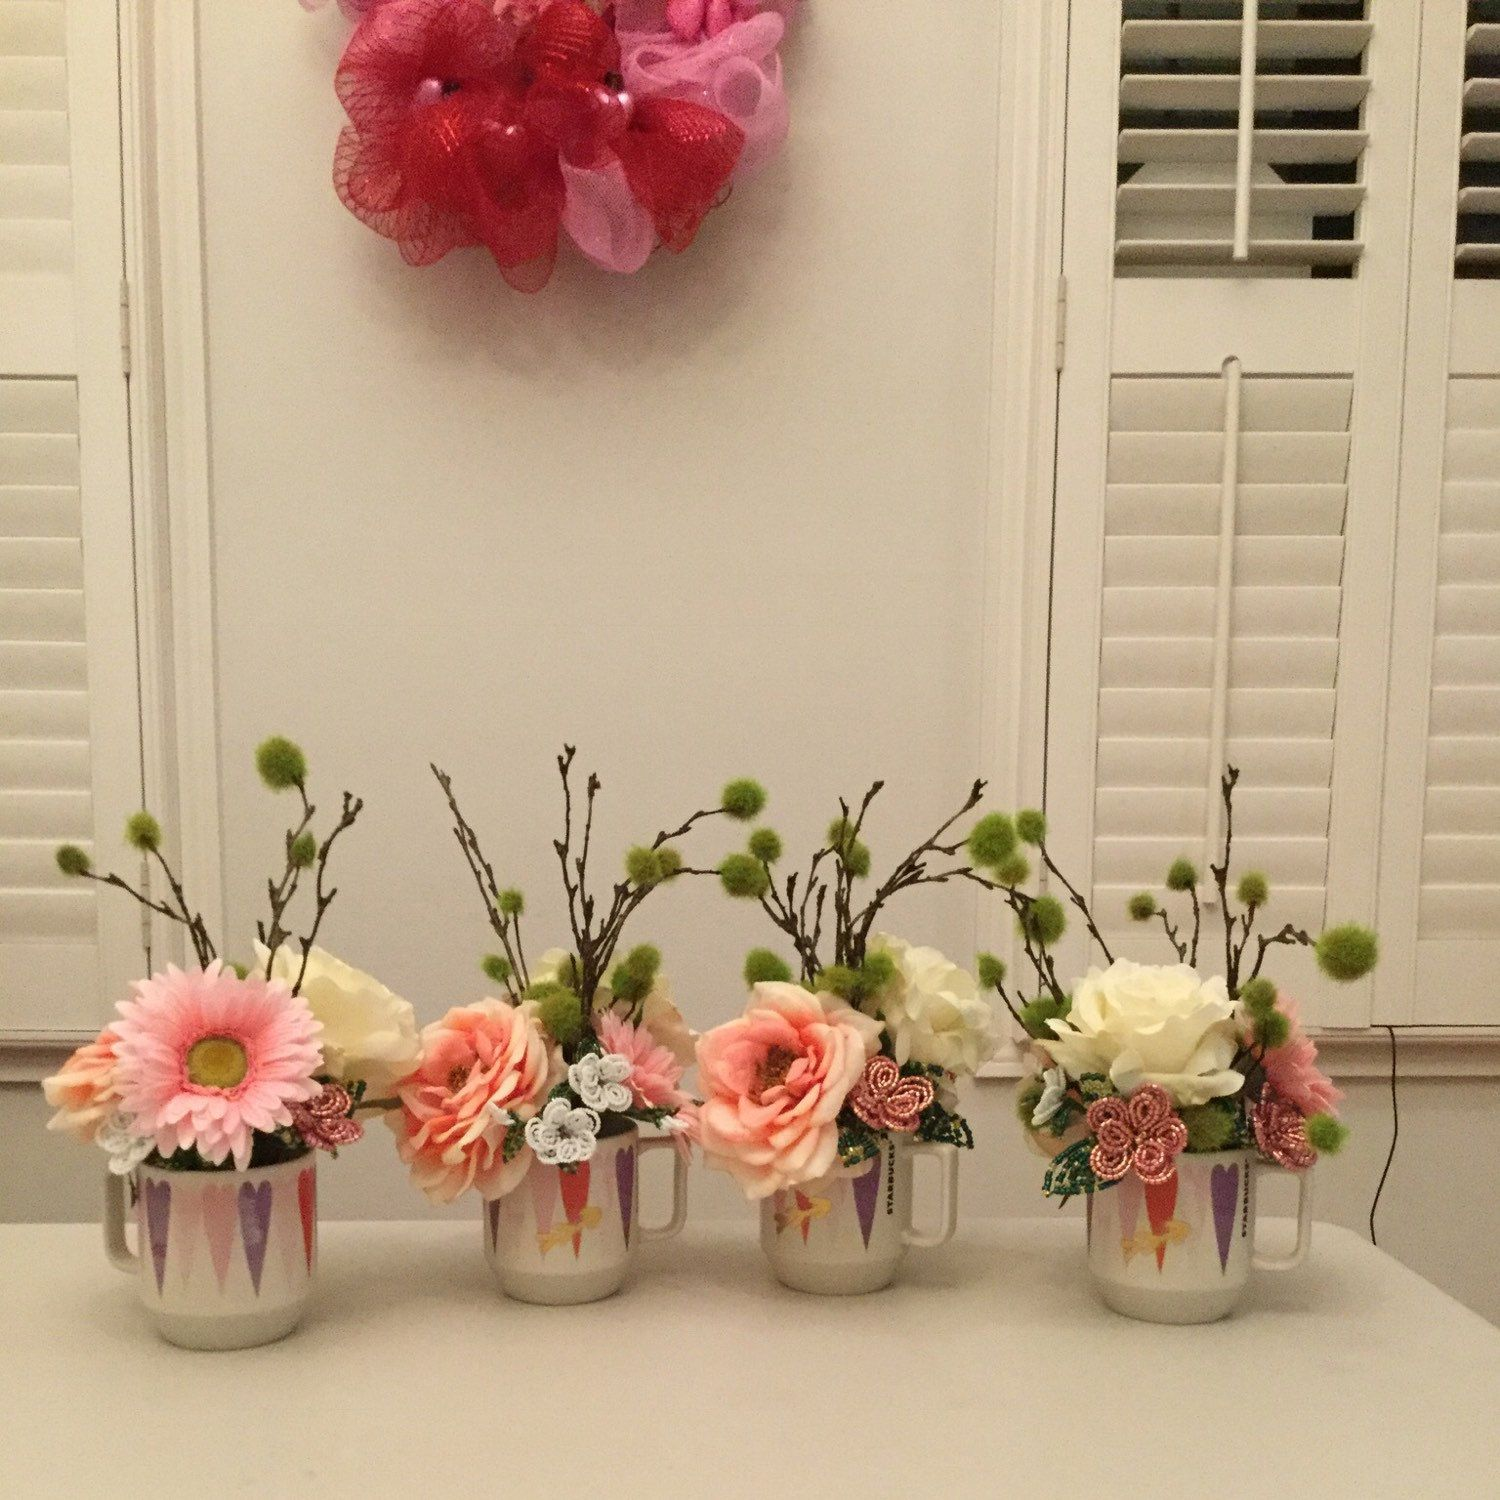 New Item At Zenwreath Flower Centerpieces Small Centerpieces